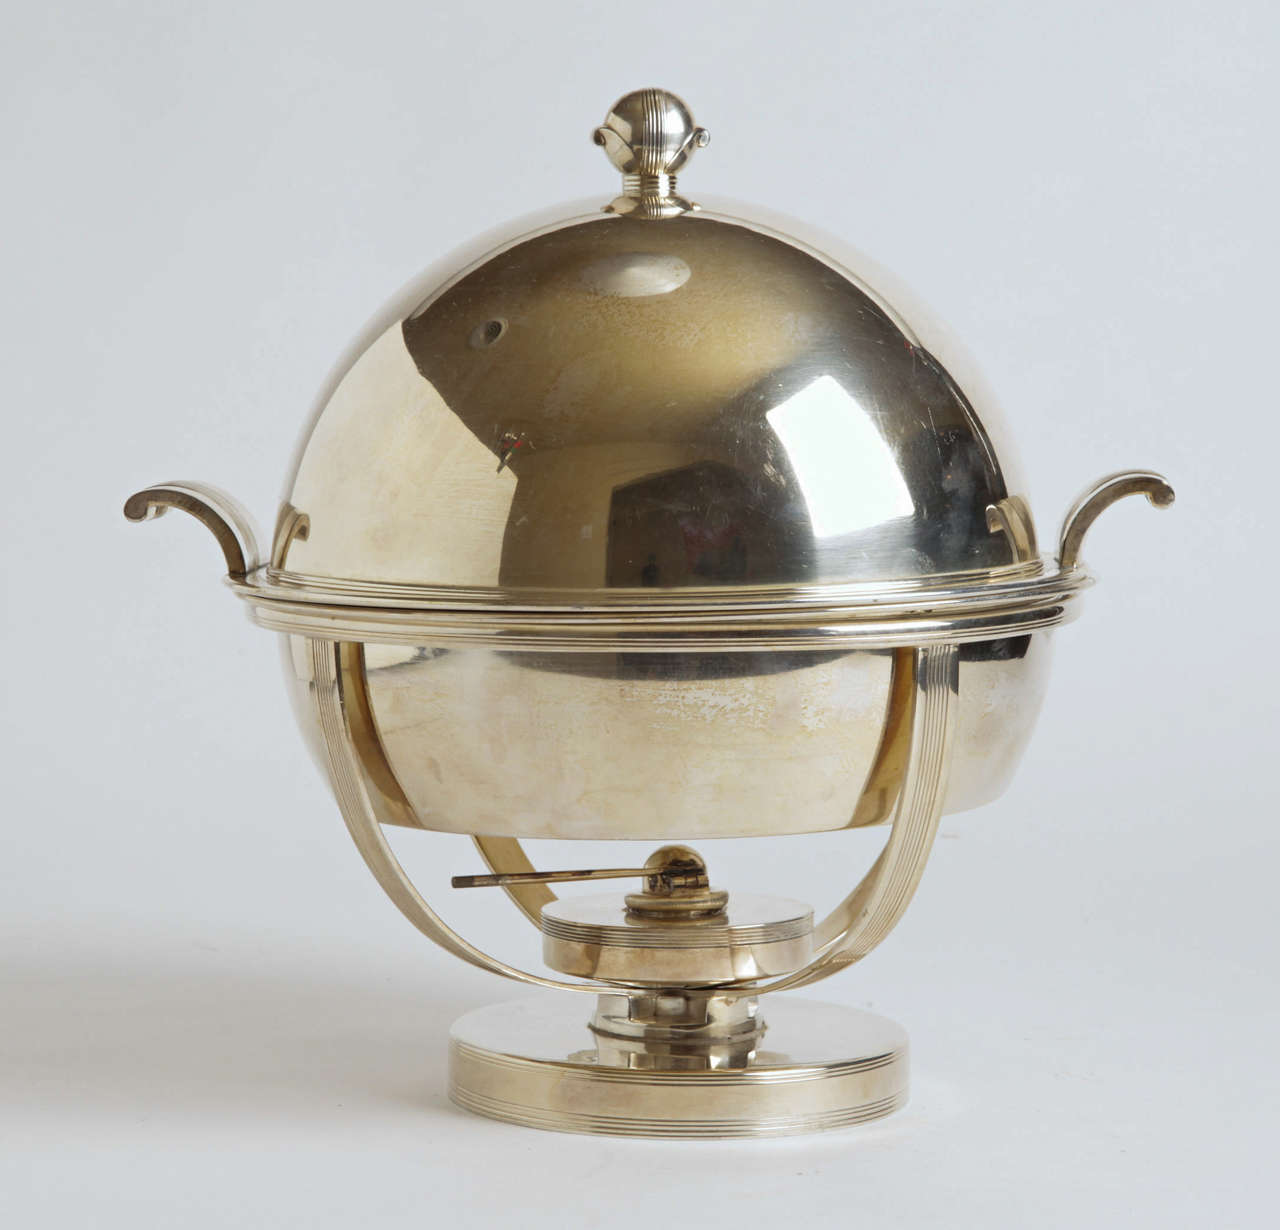 Machine Age Art Deco Chafing Set, Lurelle Guild for International Silver  Rare  This one has all the Iconic Guild International silver-plate elements: Signature bud finial, incised horizontal lines, curved speed handles and Saturn frame.  Comprising